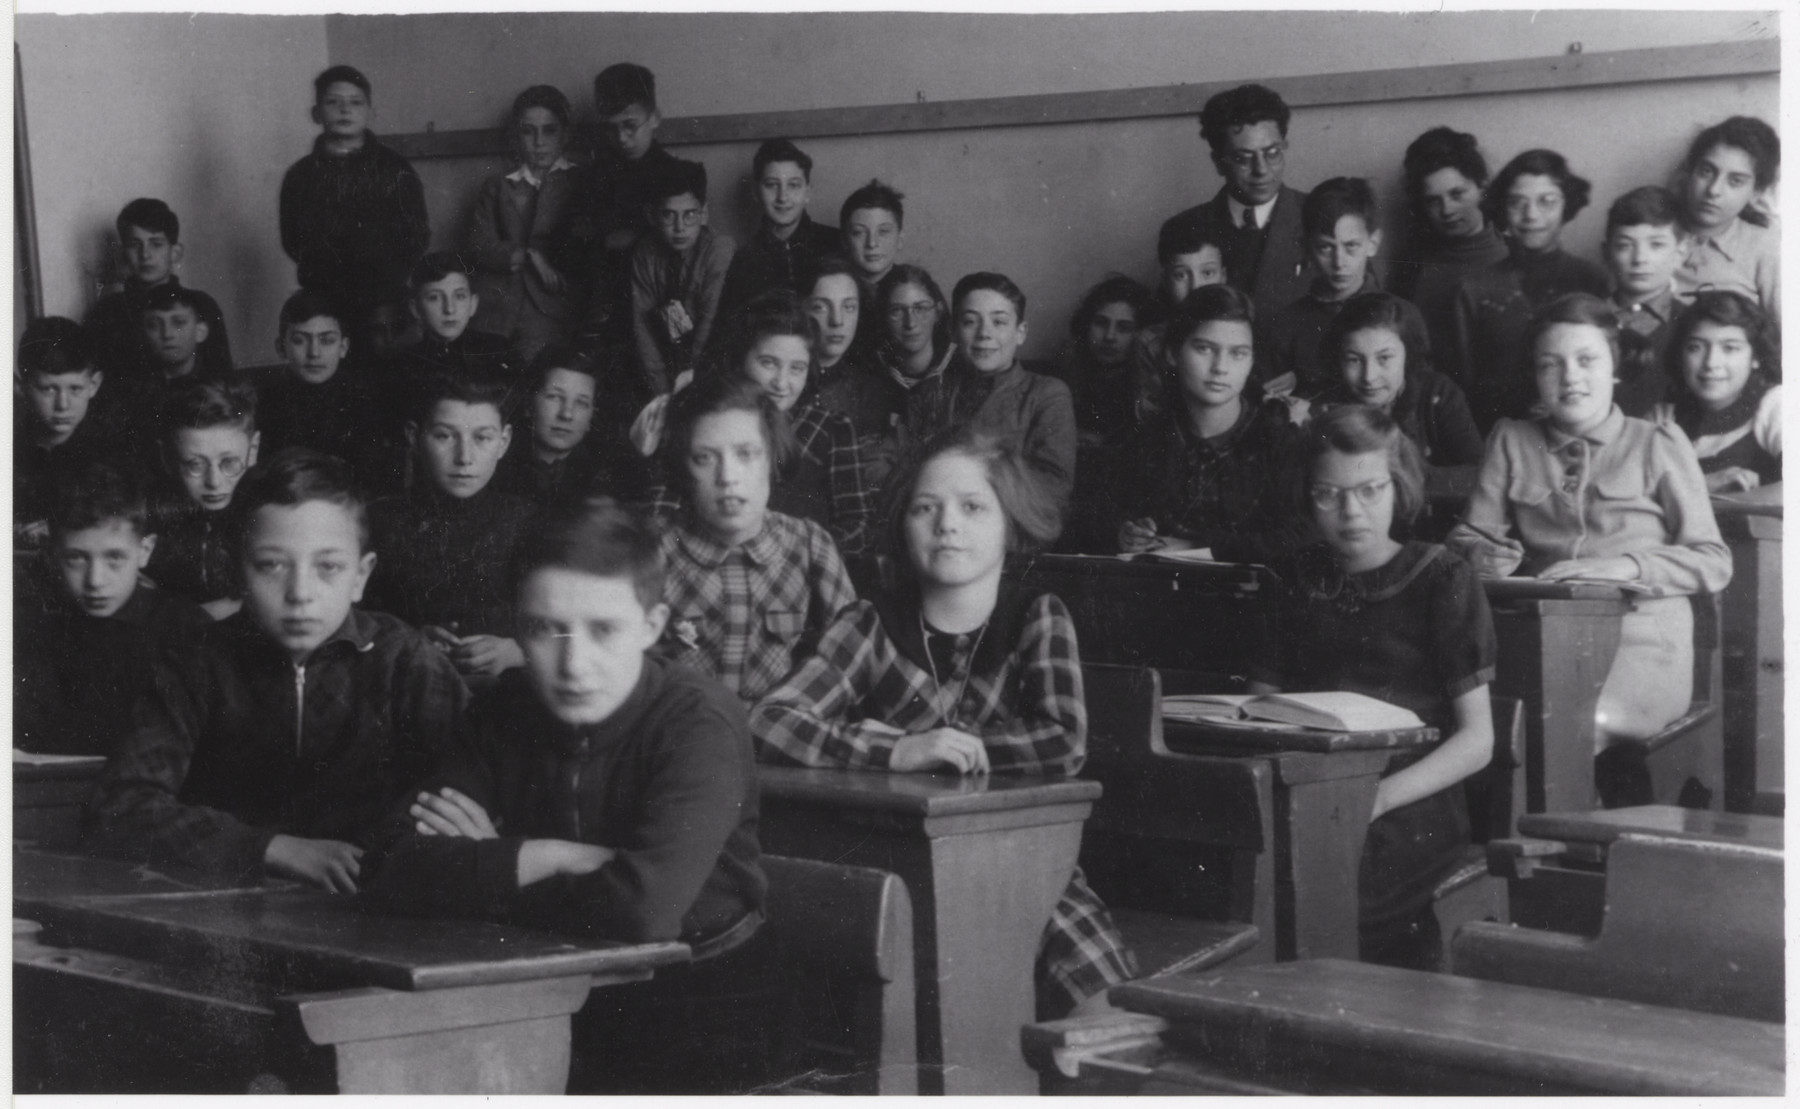 Students in a classroom in Utrecht, including a handful of Jewish students.    Among those pictured is Karin Joshua.  The Joshua children attended the school for a few months before all the Jewish students were expelled.  Afterwards they attended a Jewish school.